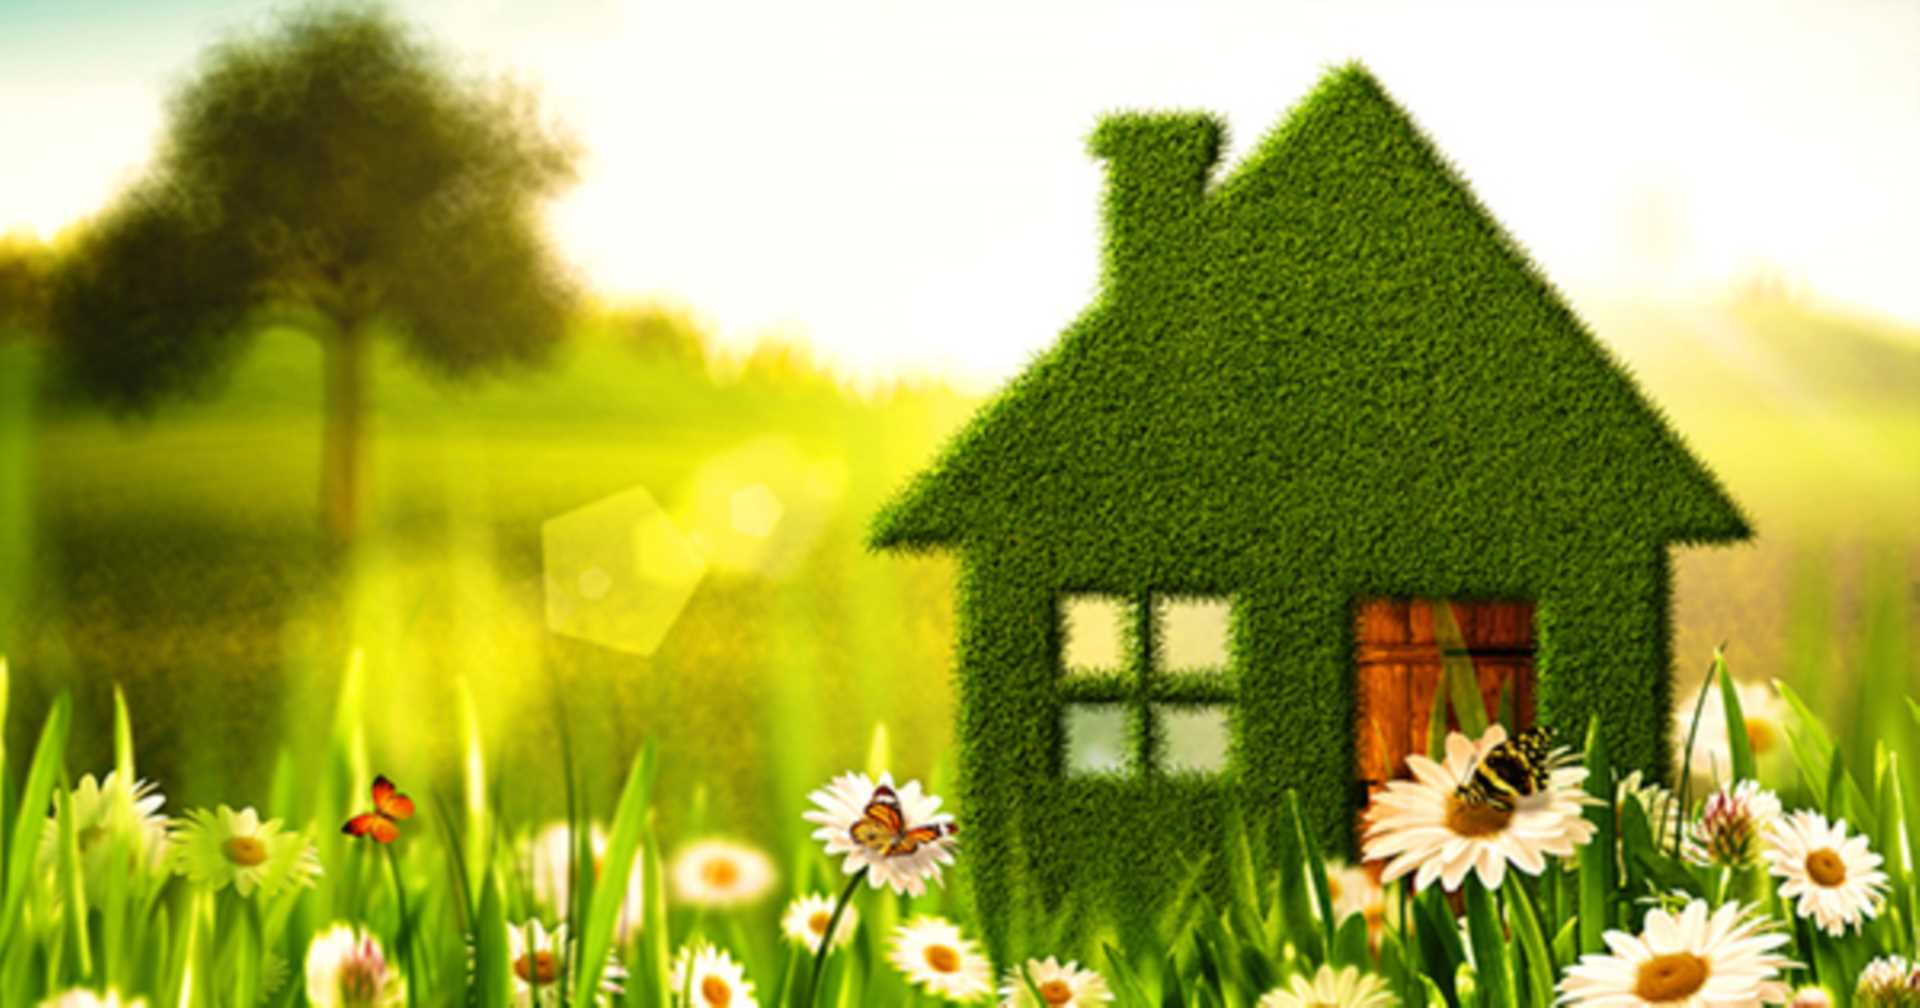 Top tips to sell your house this spring